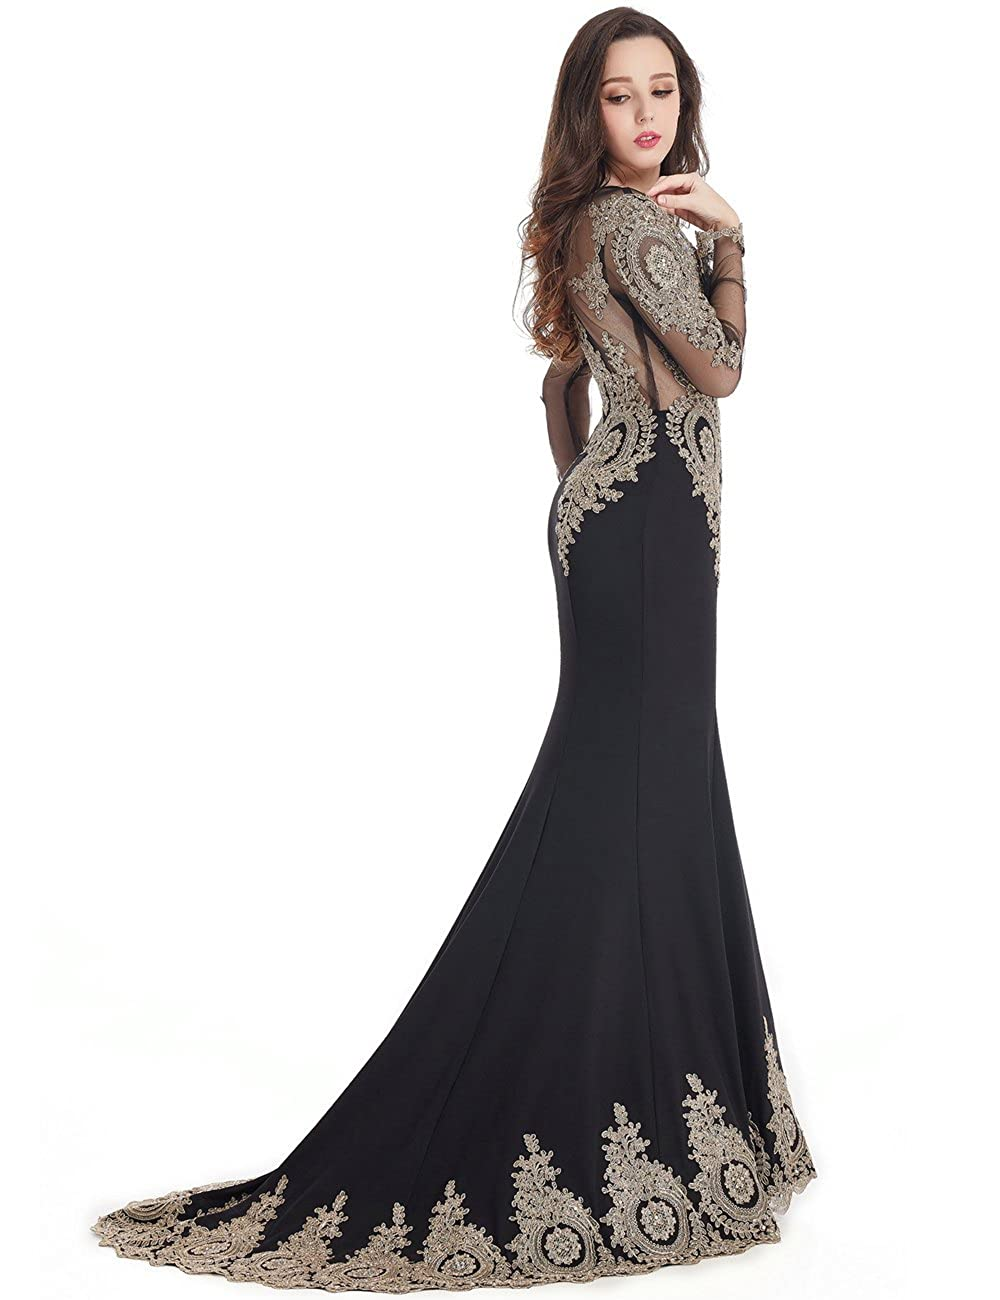 55a8c0ed74dc Amazon.com: MisShow Crystals Beaded Lace Mermaid Evening Dress for Women  Formal: Clothing